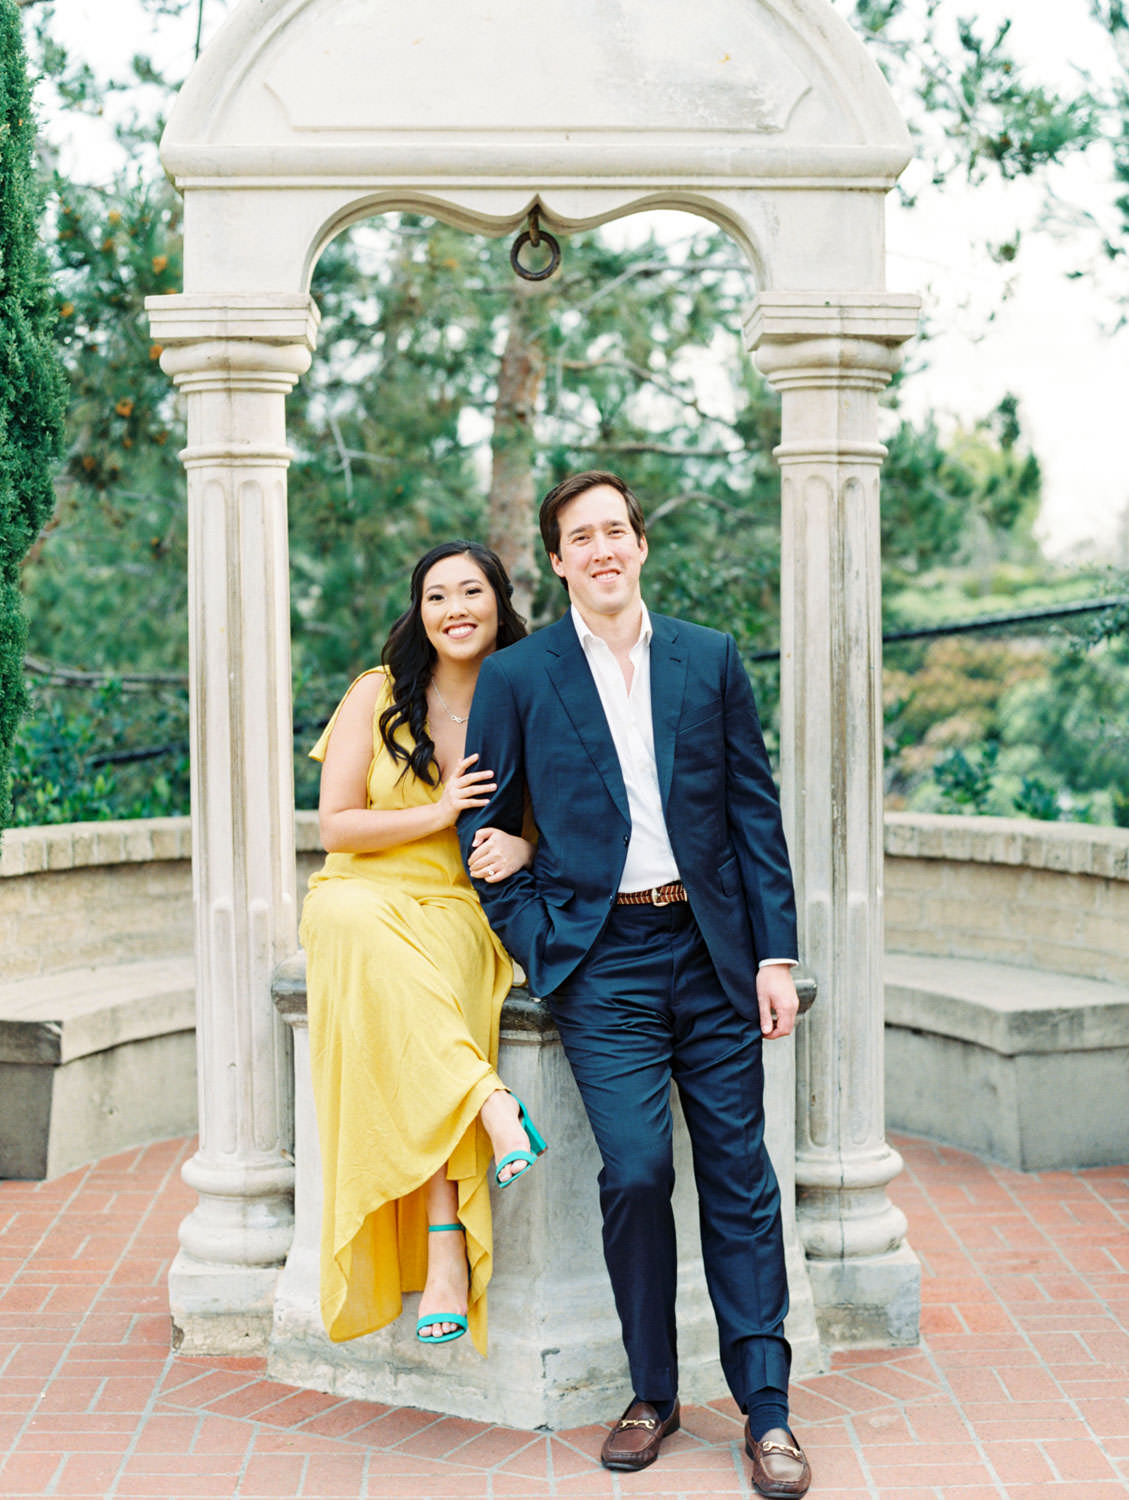 Bride in yellow flowy dress and groom in navy suit sitting on fountain, The Prado wishing well engagement film photos by Cavin Elizabeth Photography